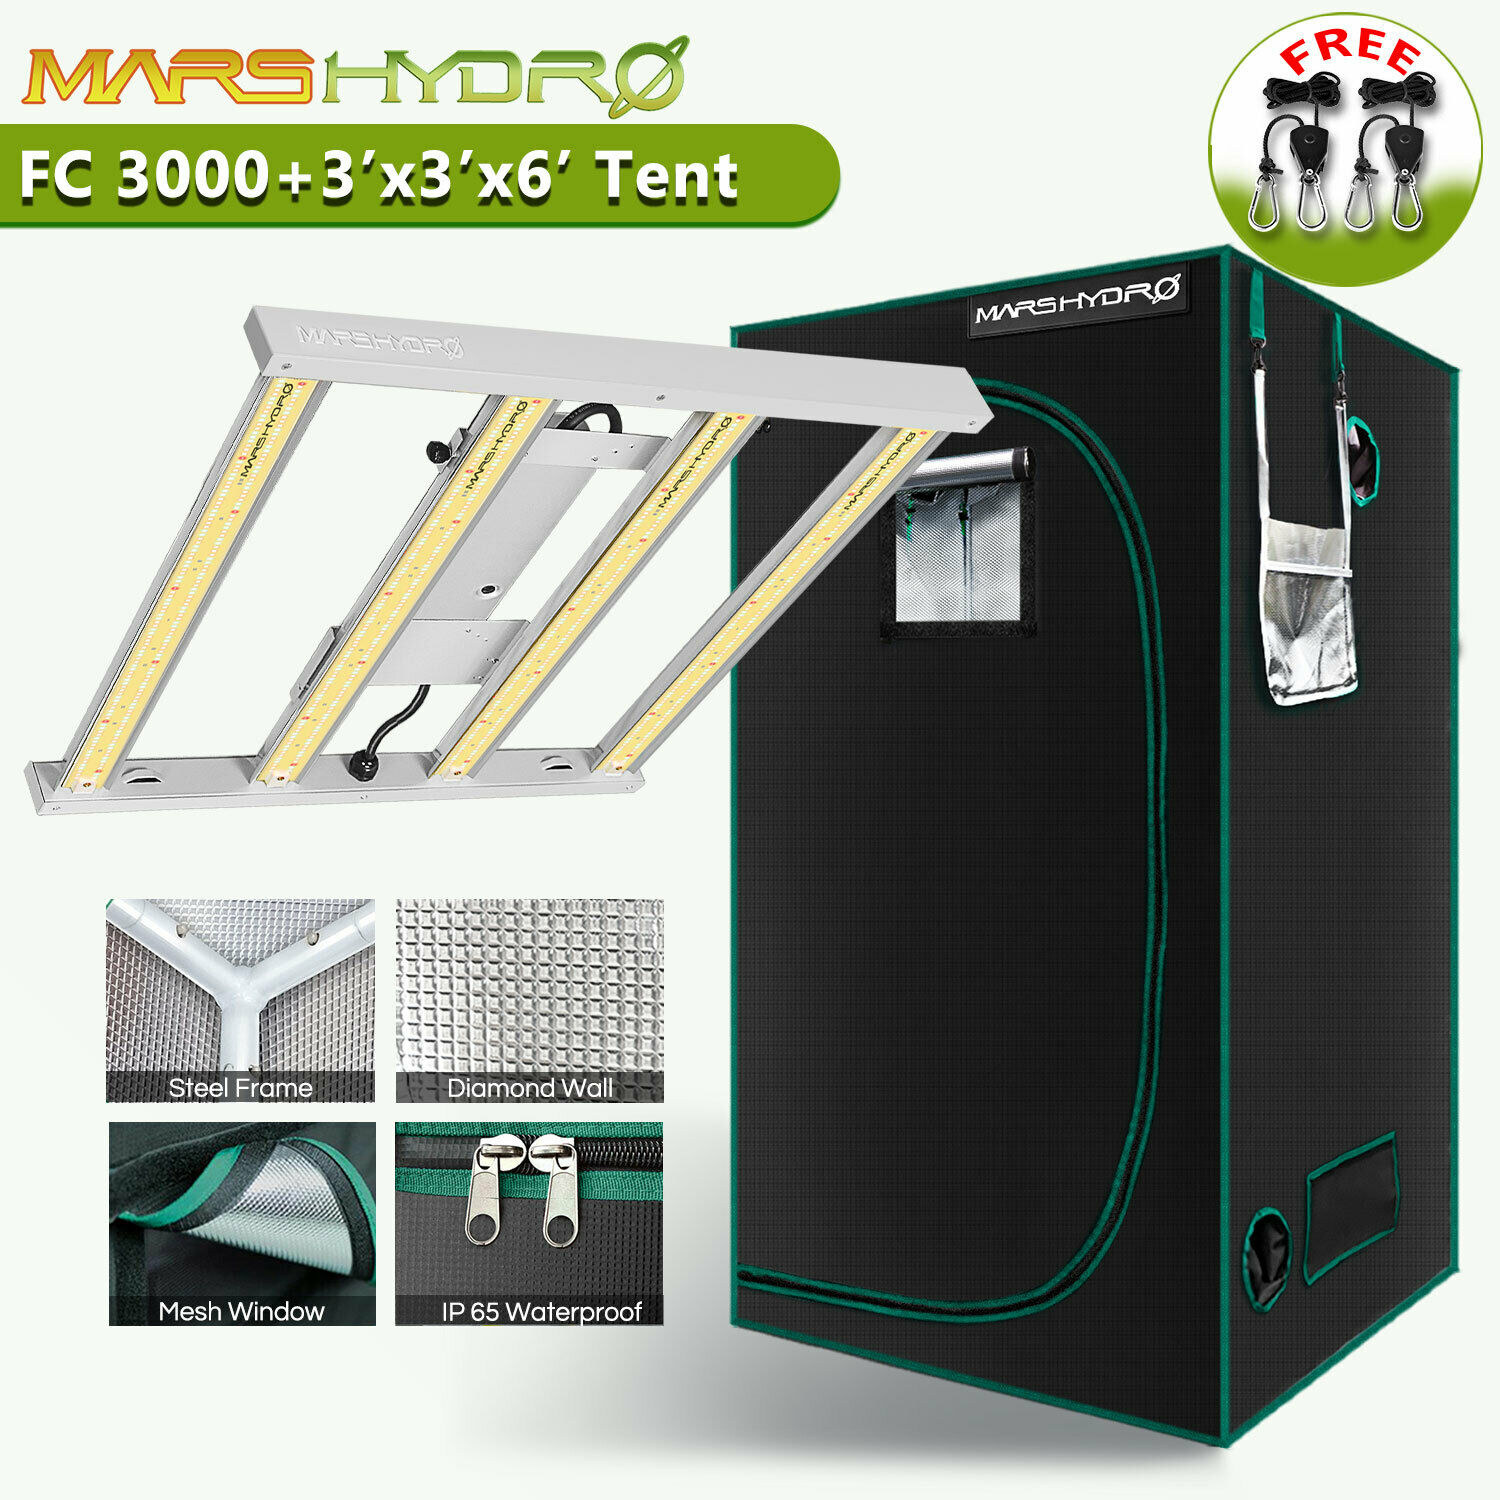 Mars 300w Led Grow Light Hydro Full Spectrum Veg Flower